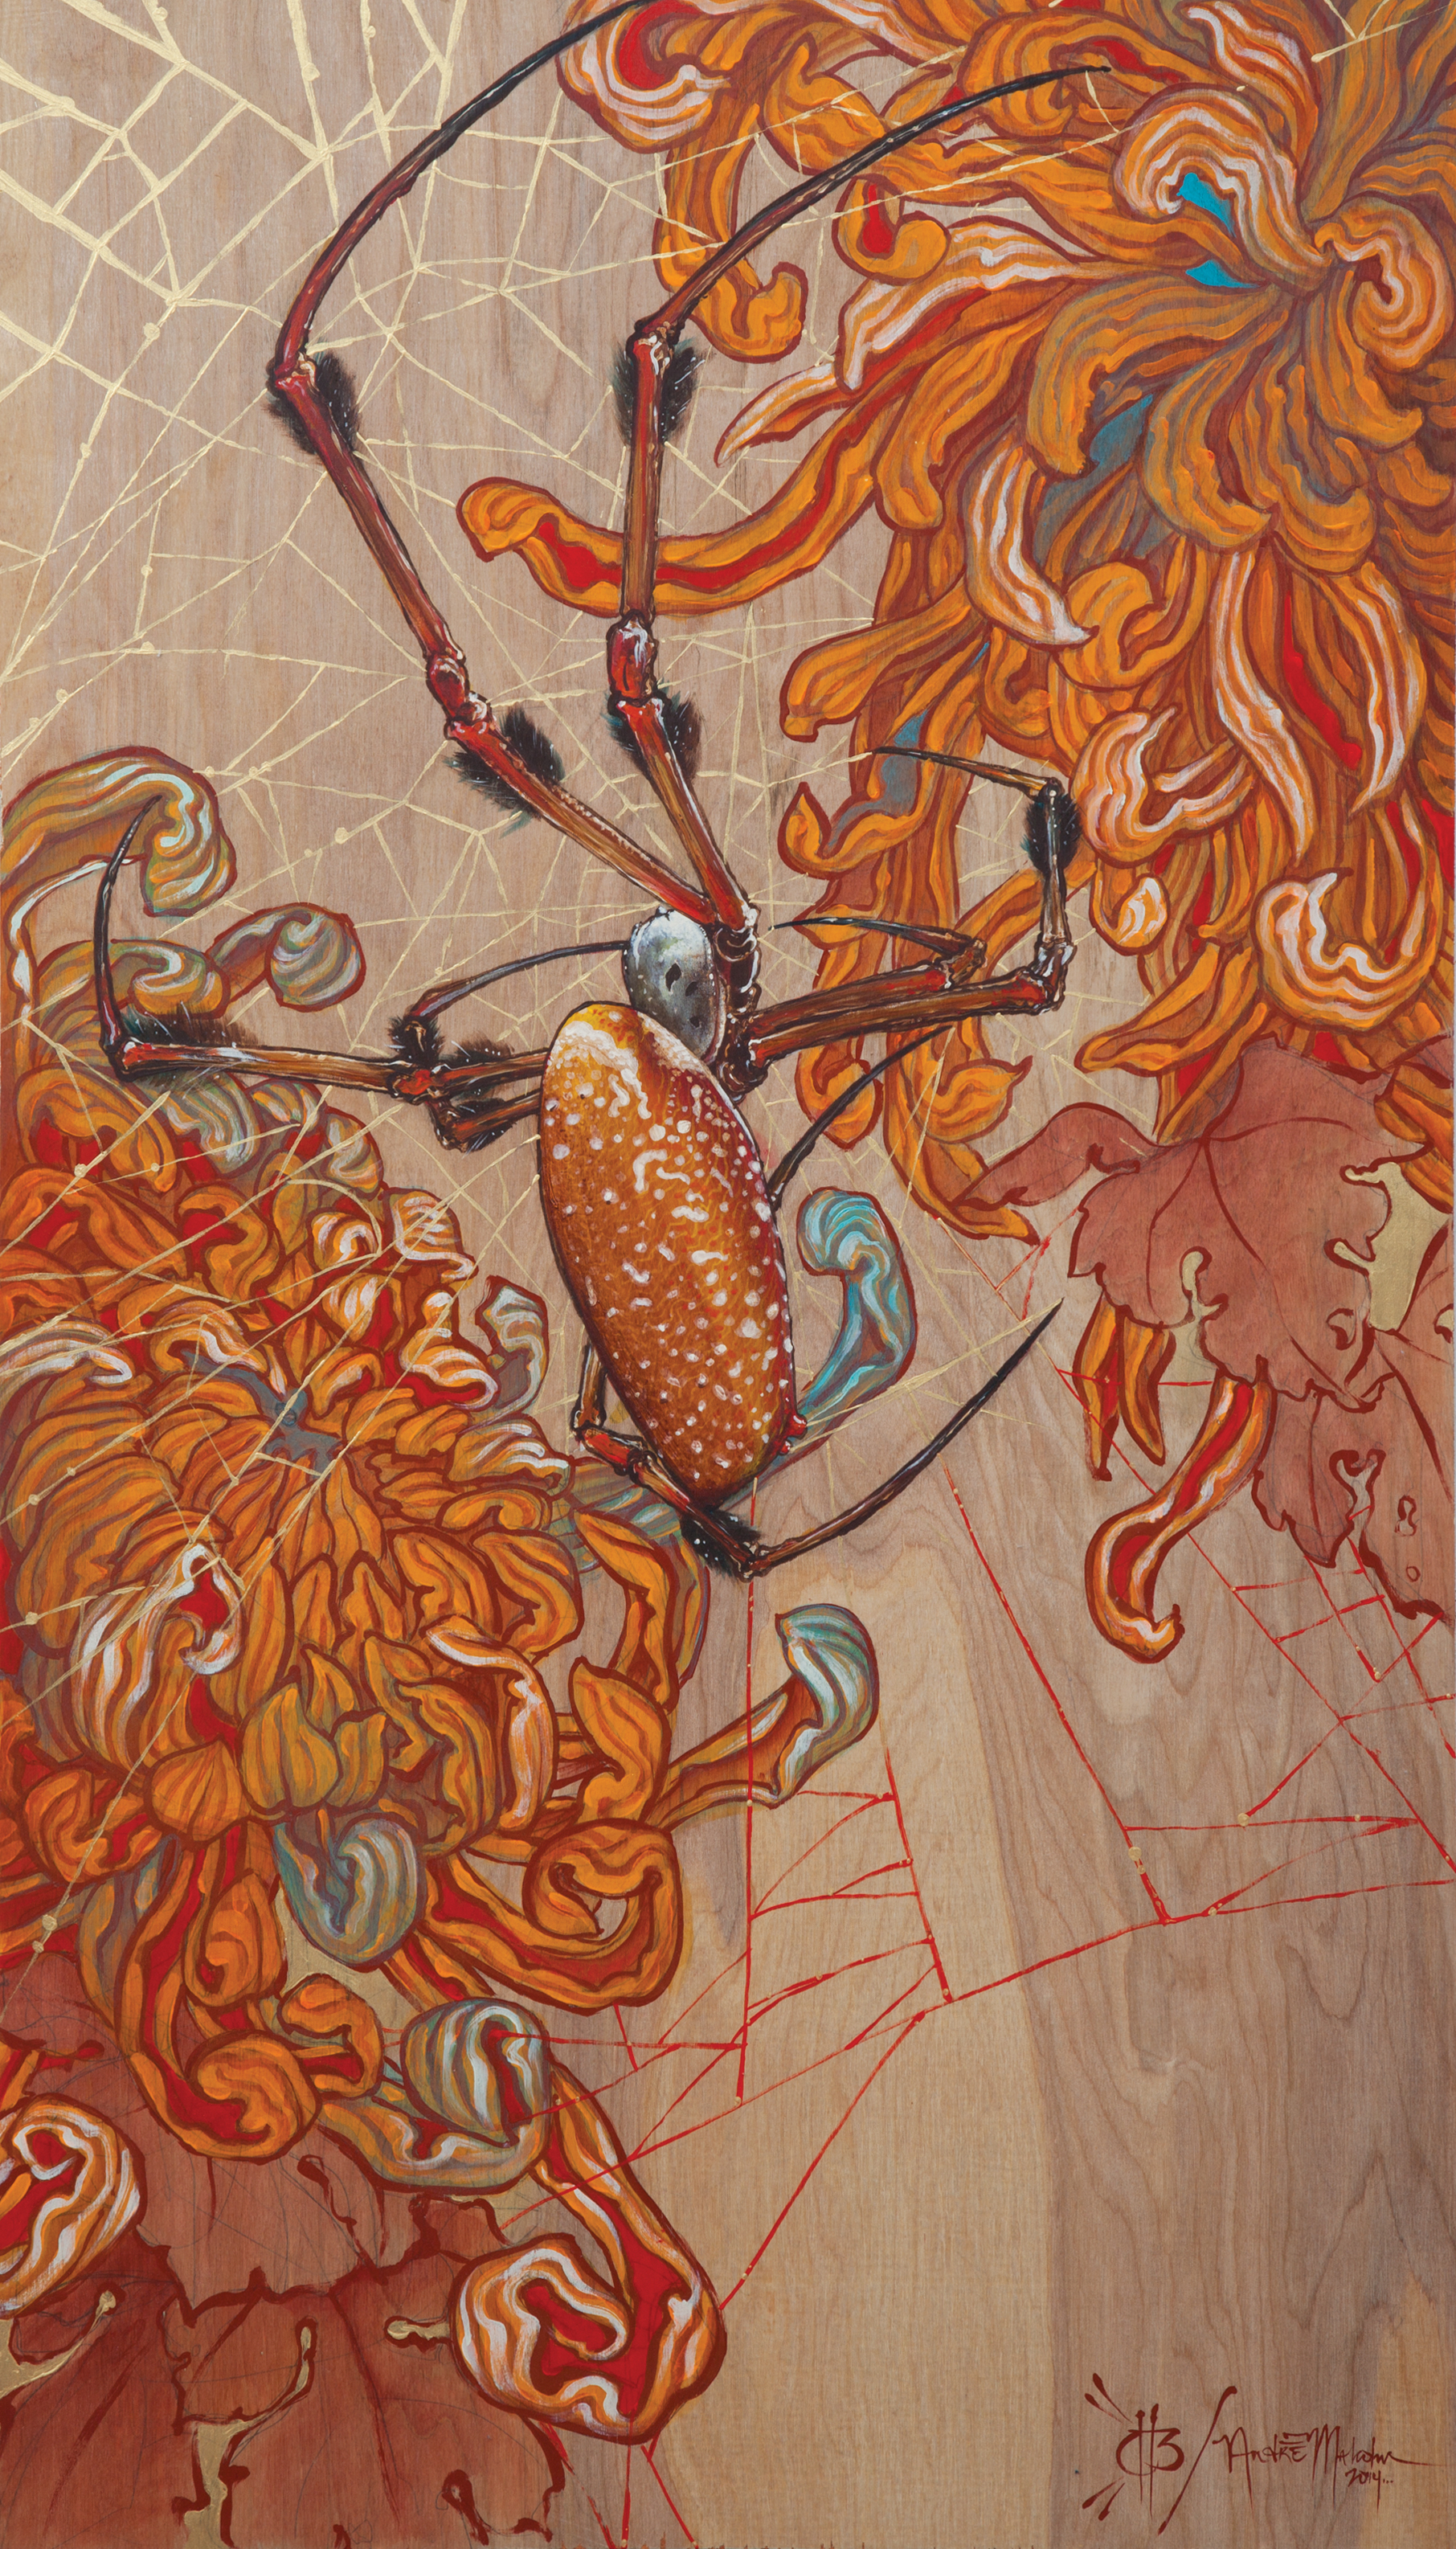 Christopher Brand & André Malcolm- Spider/mums. 2014- acrylic on wood. 2'x 4'